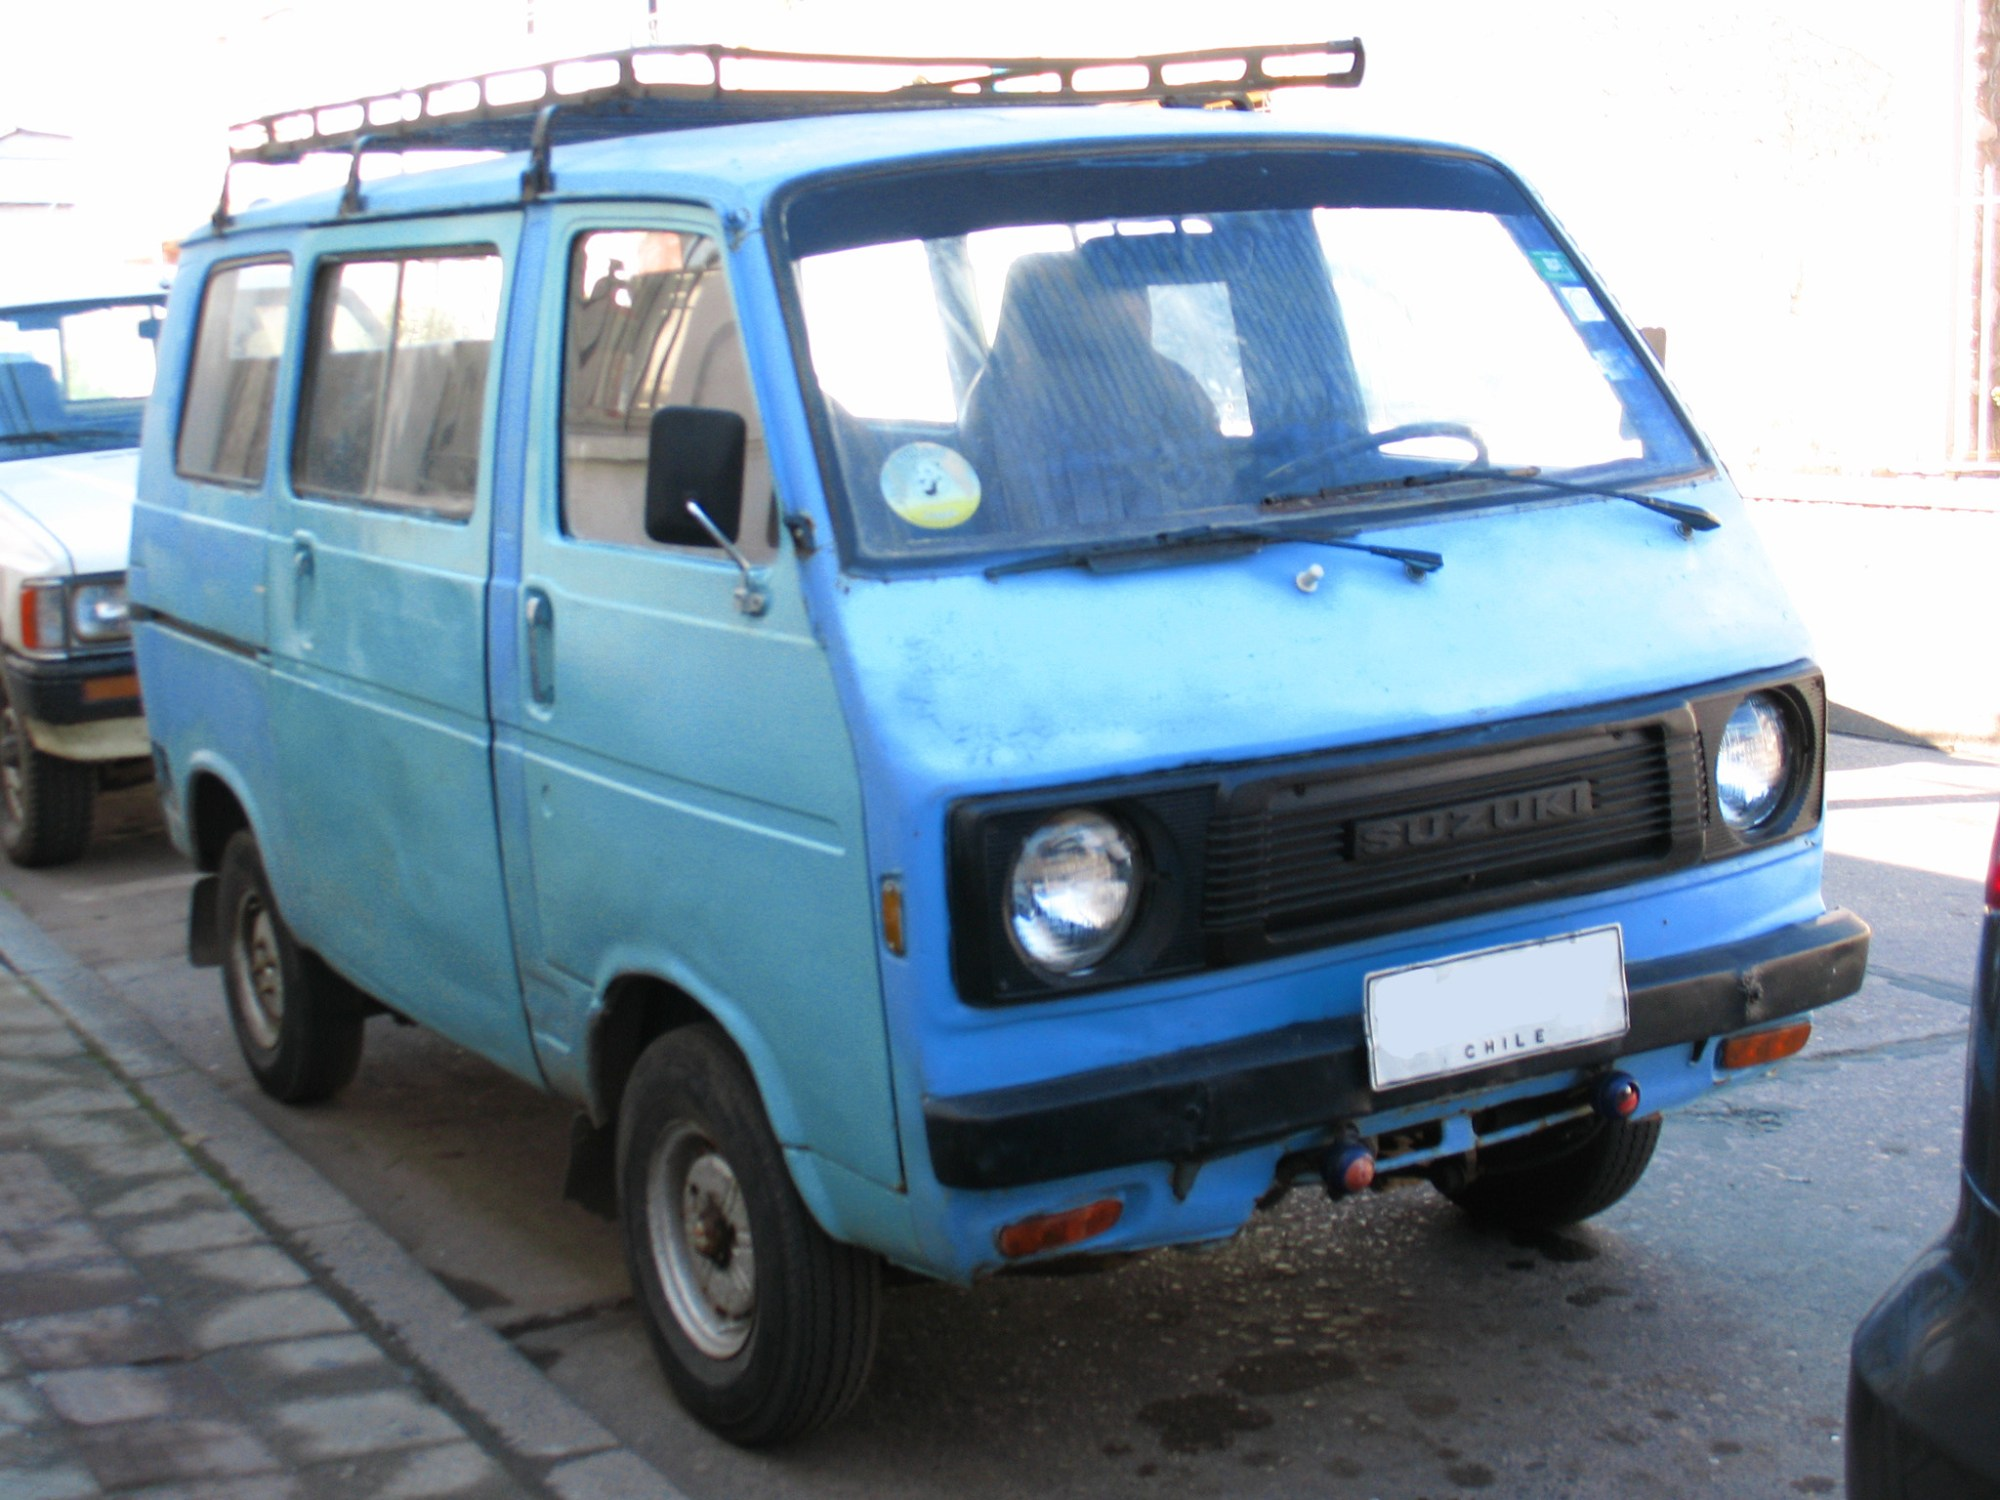 hight resolution of st80v facelift version chile this style of grille appeared in october 1977